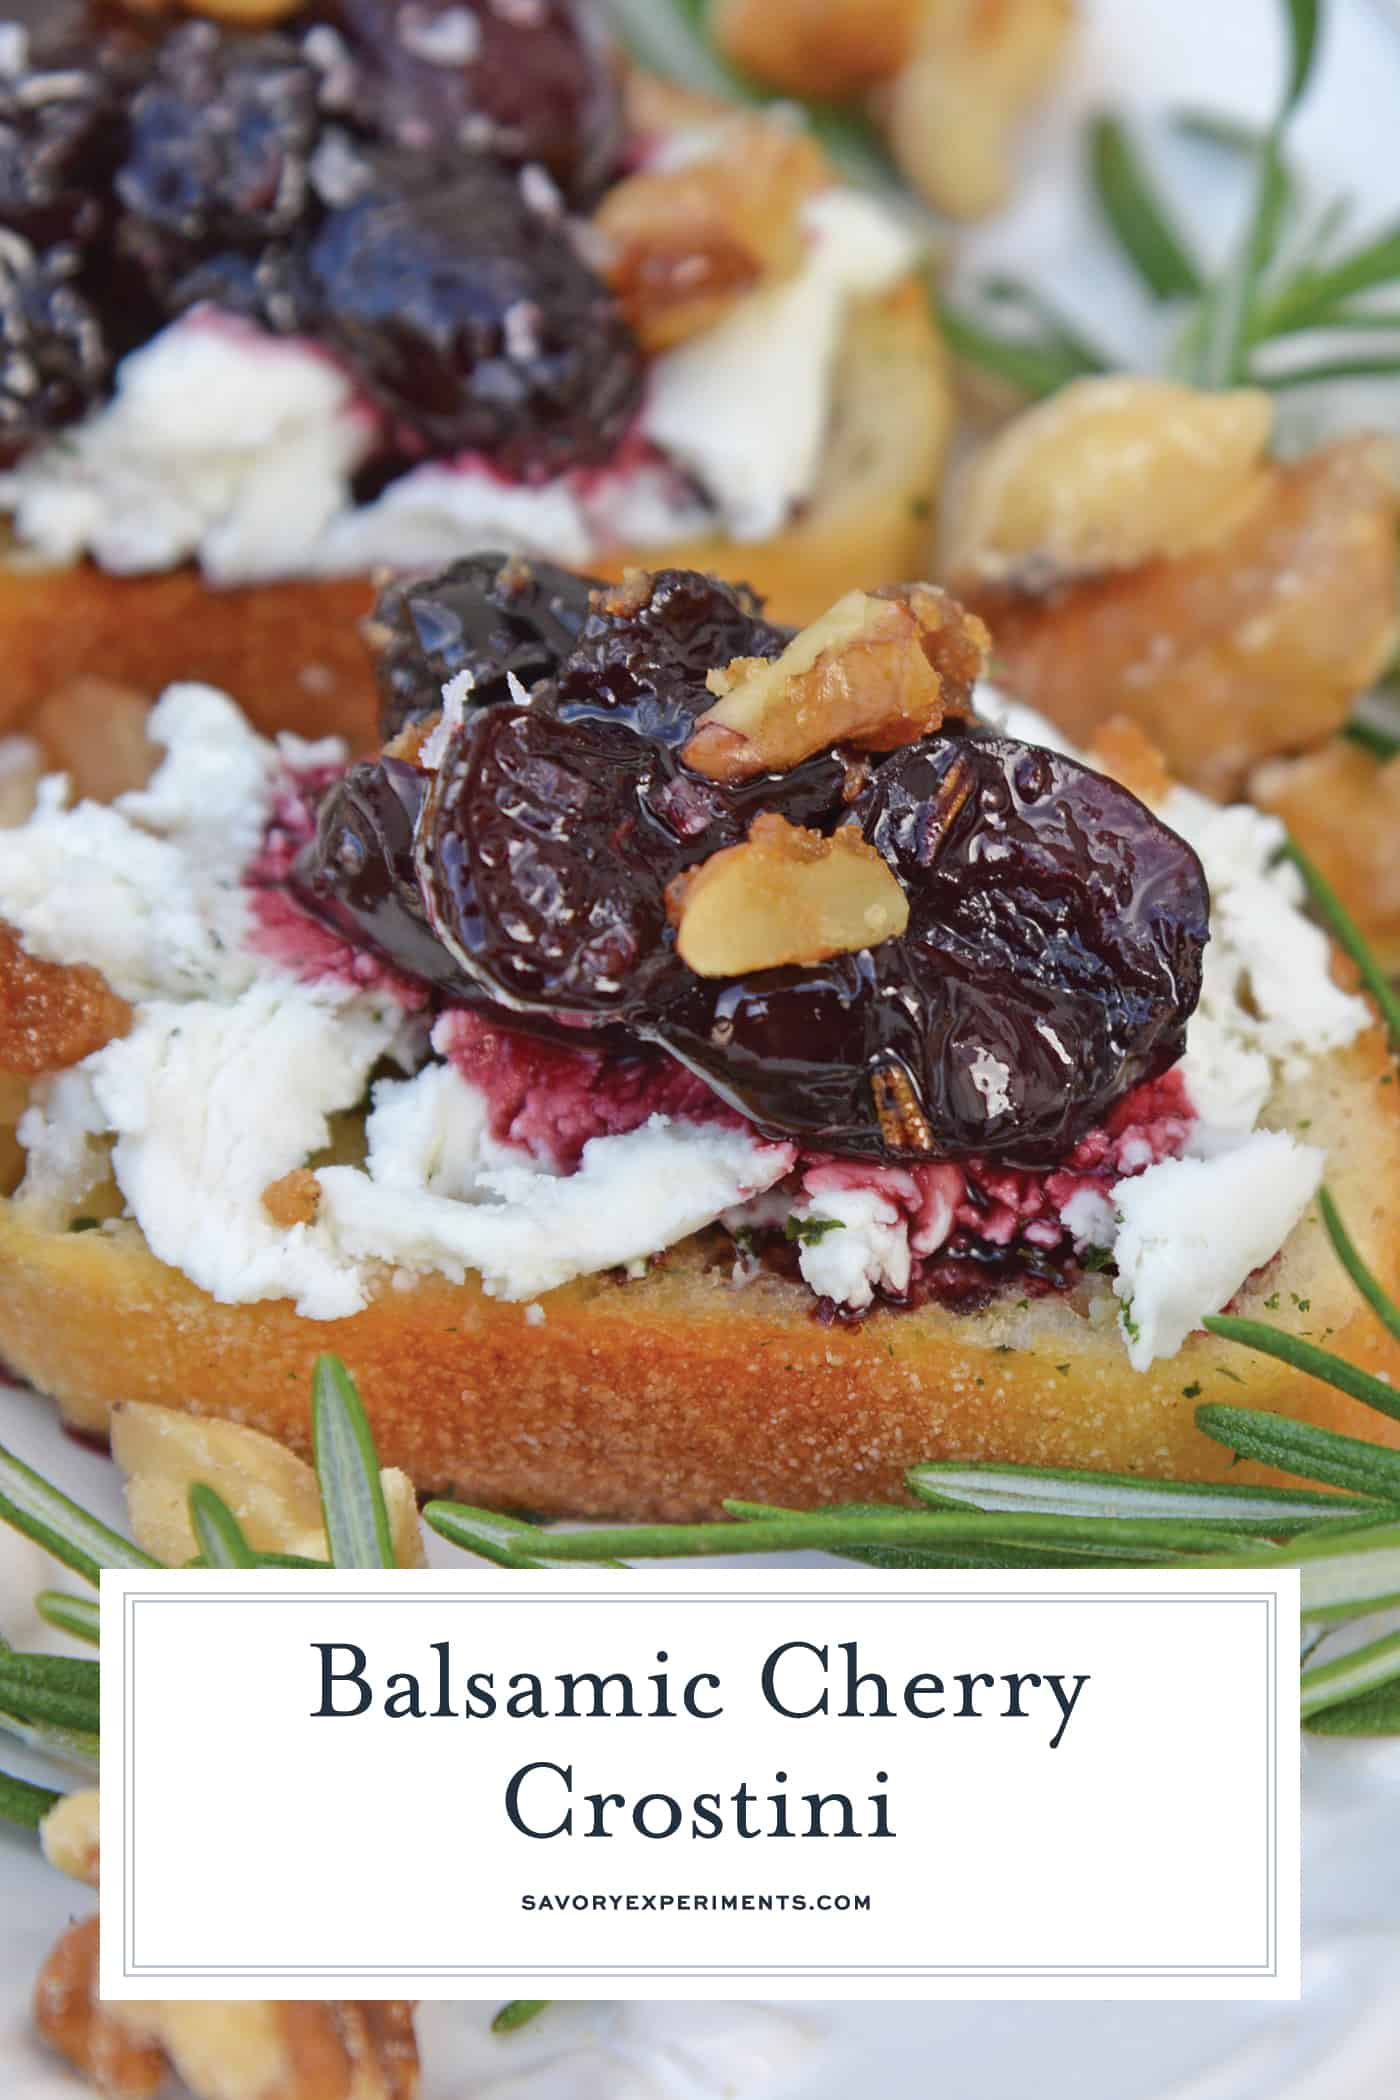 Balsamic Cherry Crostini are an easy appetizer using goat cheese and a tangy cherry balsamic reduction. The perfect holiday appetizer recipe!#crostinirecipes #goatcheeserecipes #easyappetizerrecipes www.savoryexperiments.com